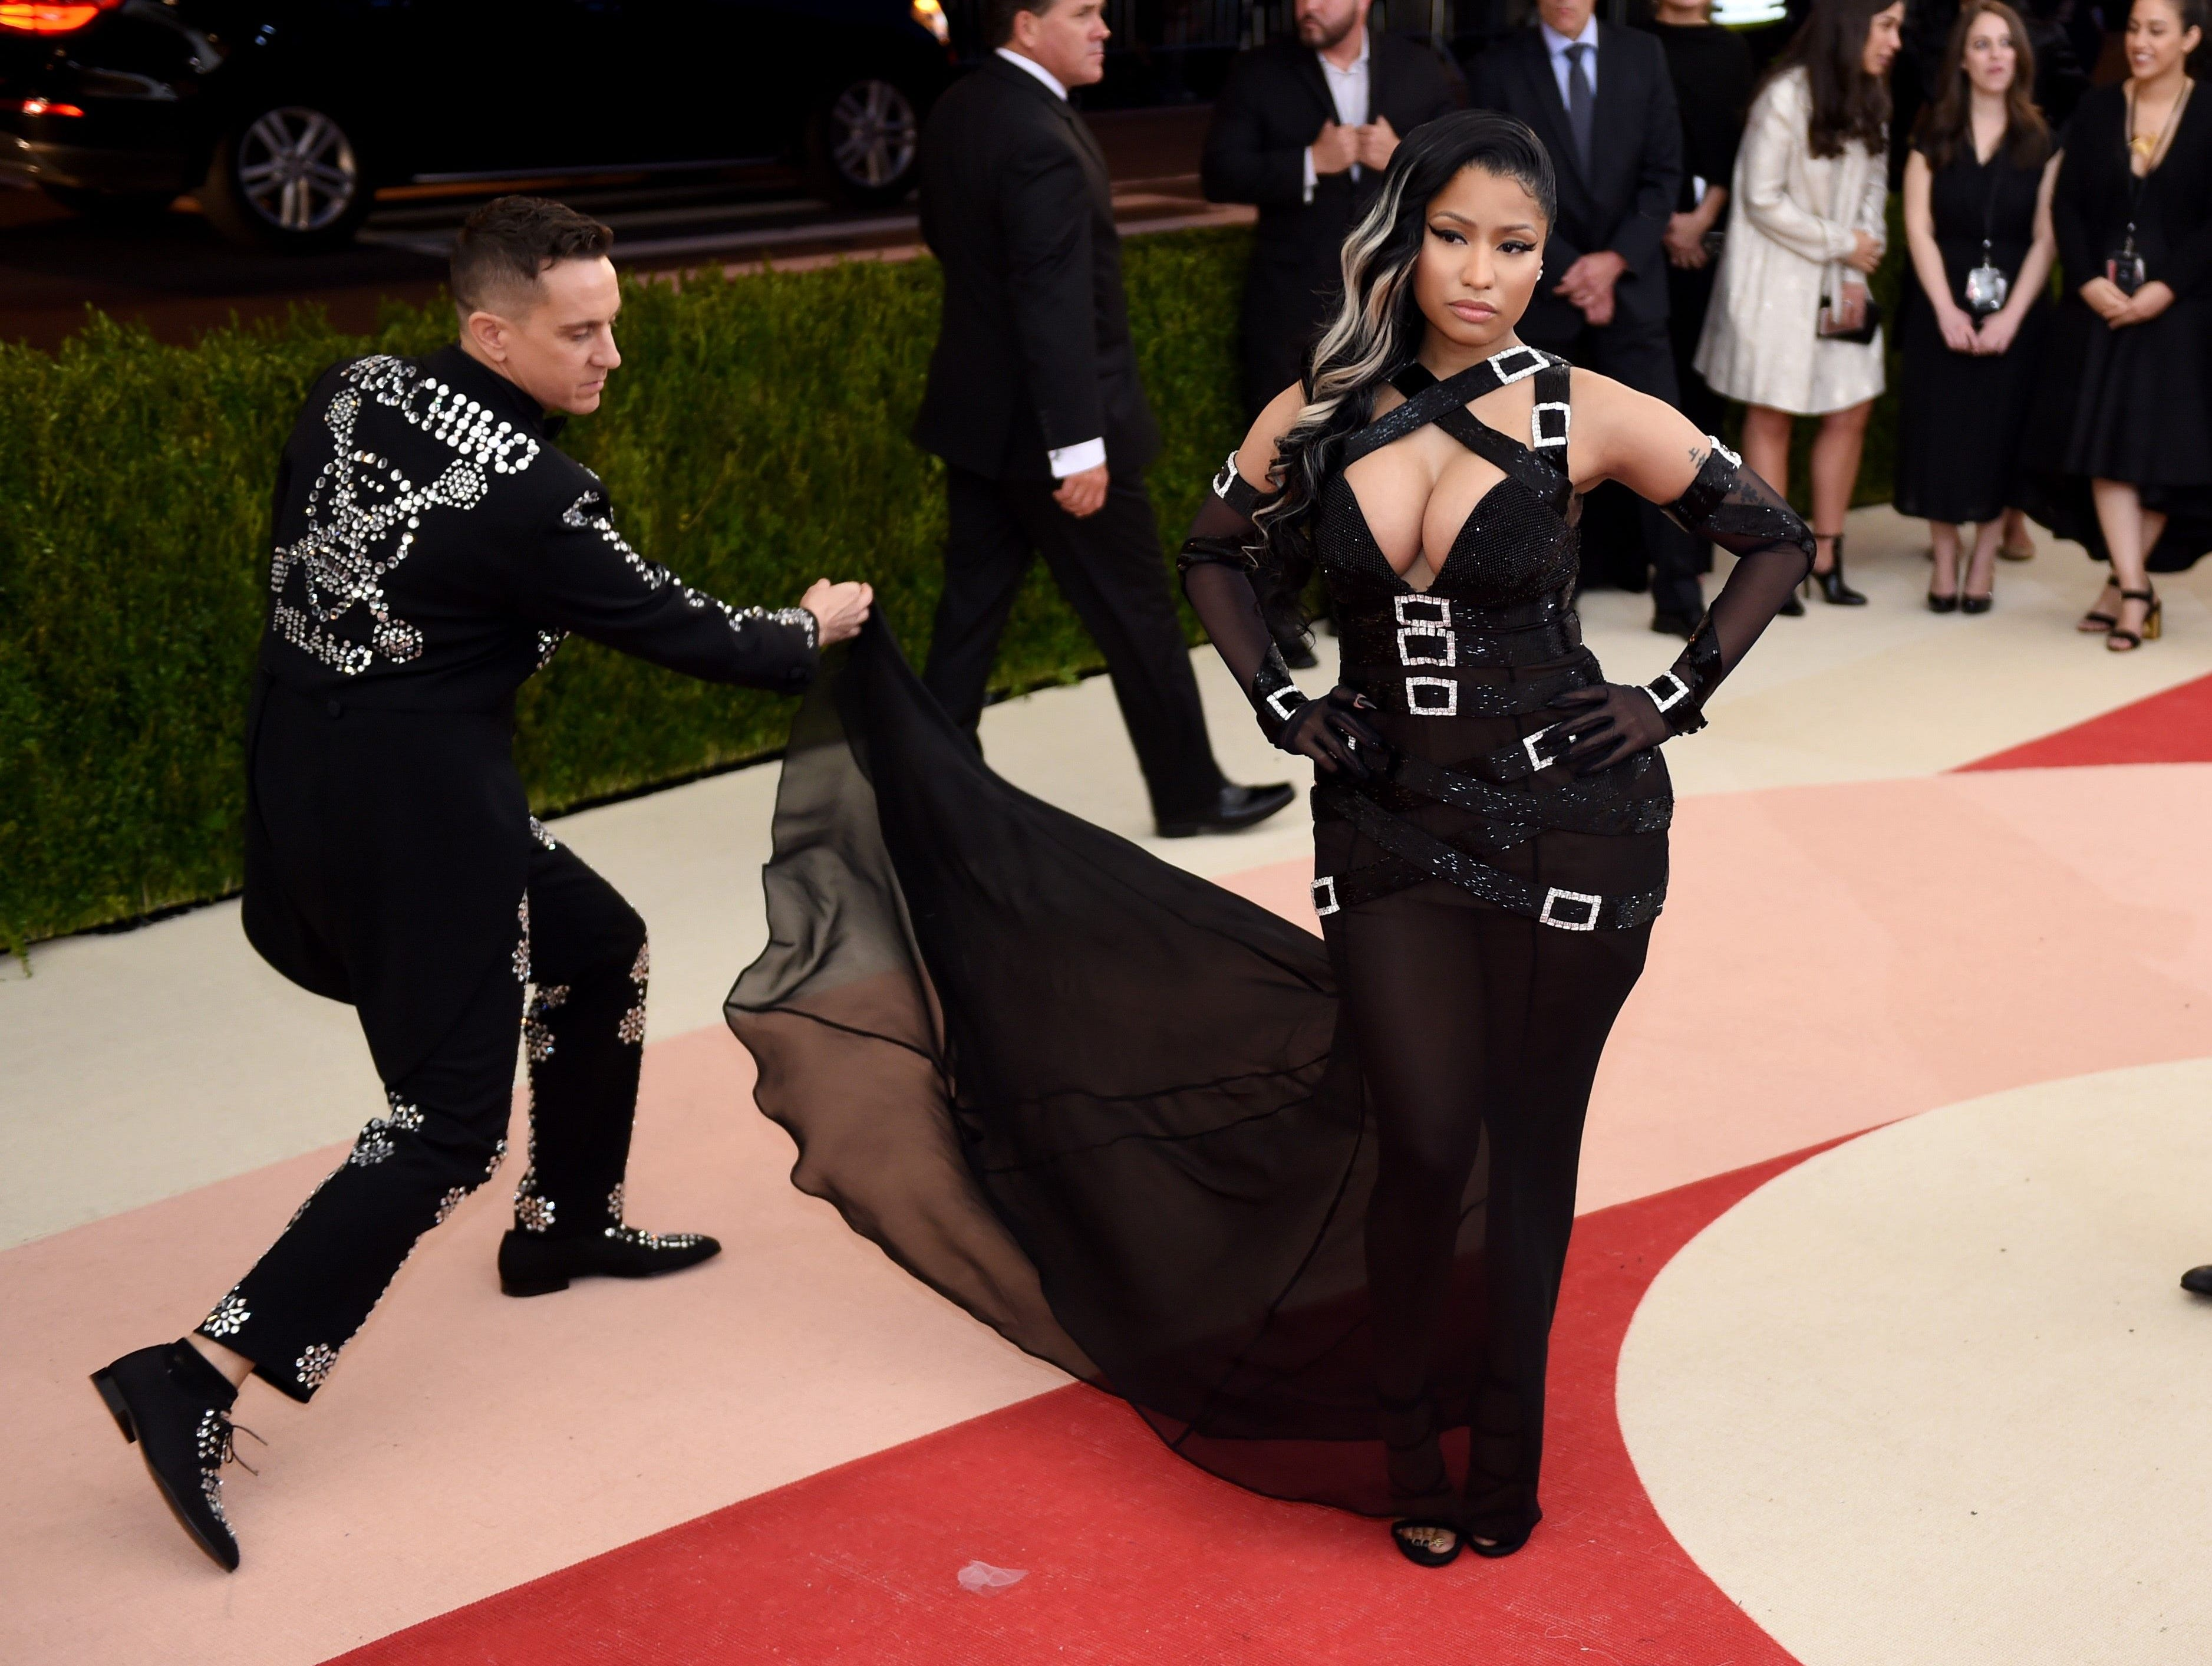 Nicki Minaj arrives for the Costume Institute Benefit at The Metropolitan Museum of Art May 2, 2016 in New York. / AFP PHOTO / TIMOTHY A. CLARYTIMOTHY A. CLARY/AFP/Getty Images ORIG FILE ID: 551521948